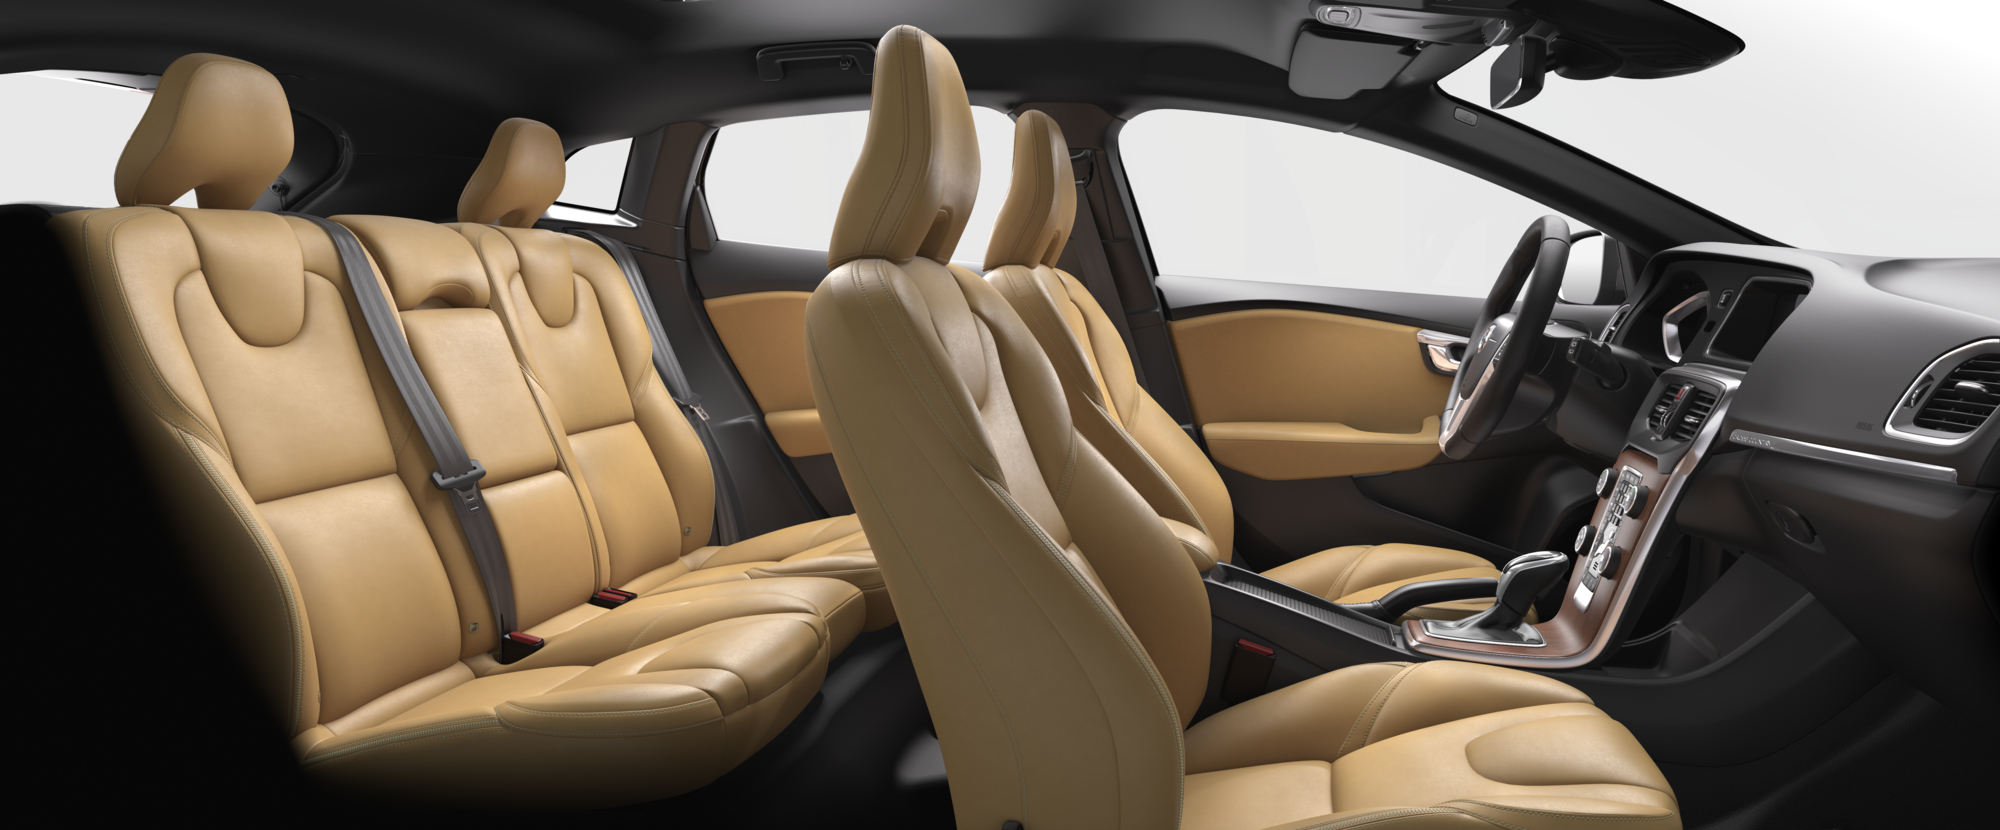 Interior shot of the Volvo V40 Cross Country with Amber Leather Seats